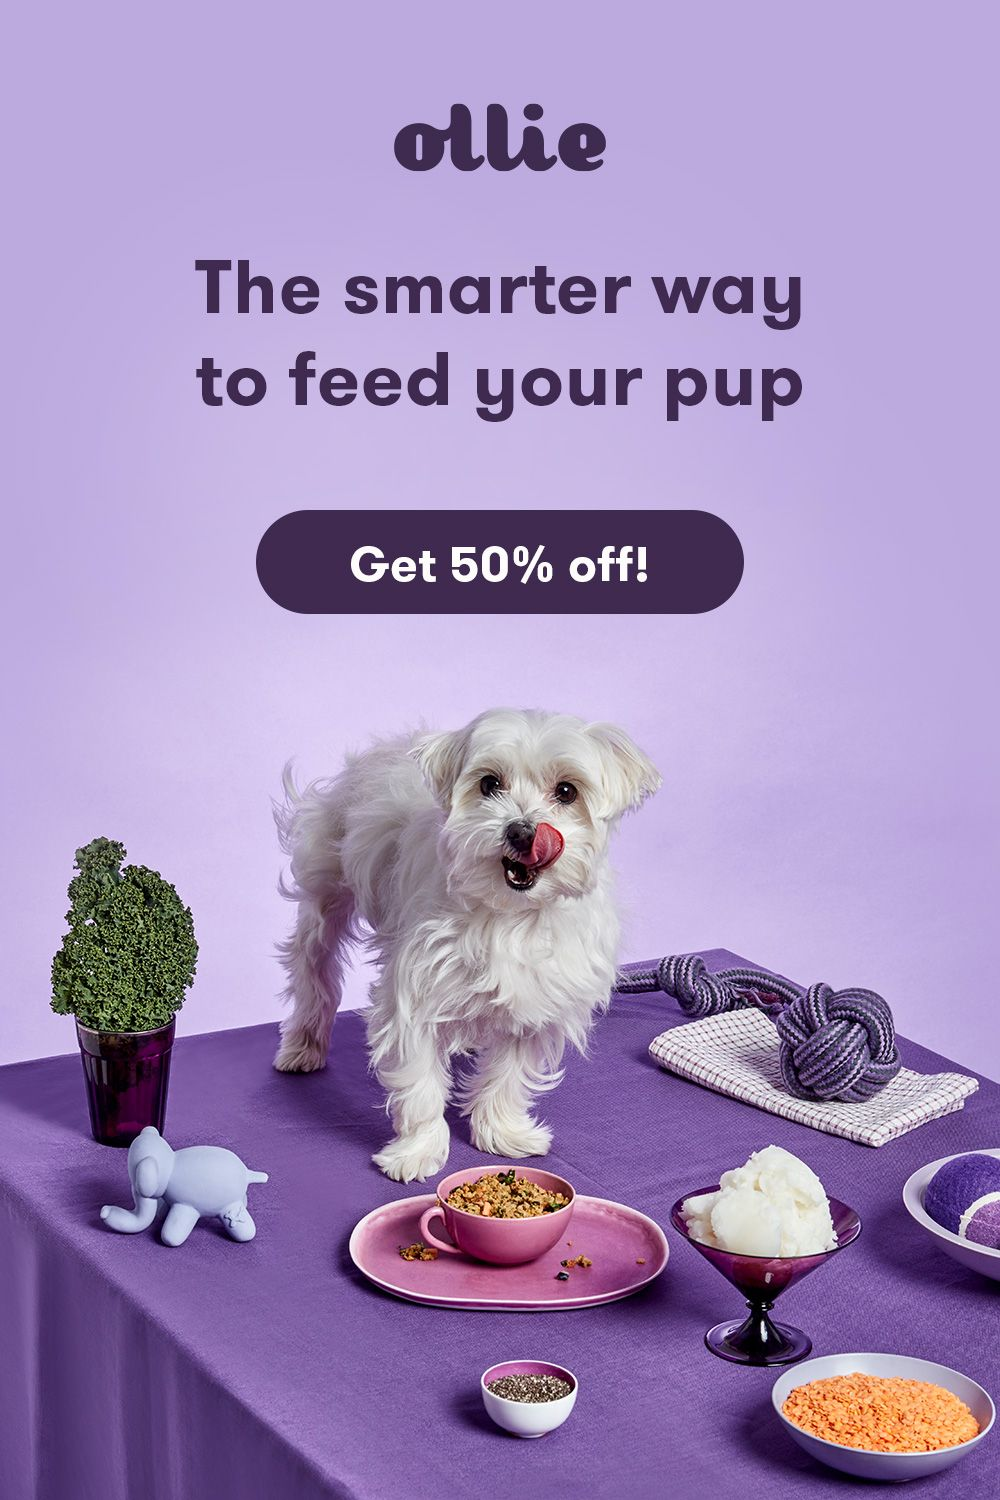 Meet Ollie Freshly Made Human Grade Dog Food Customized To Your